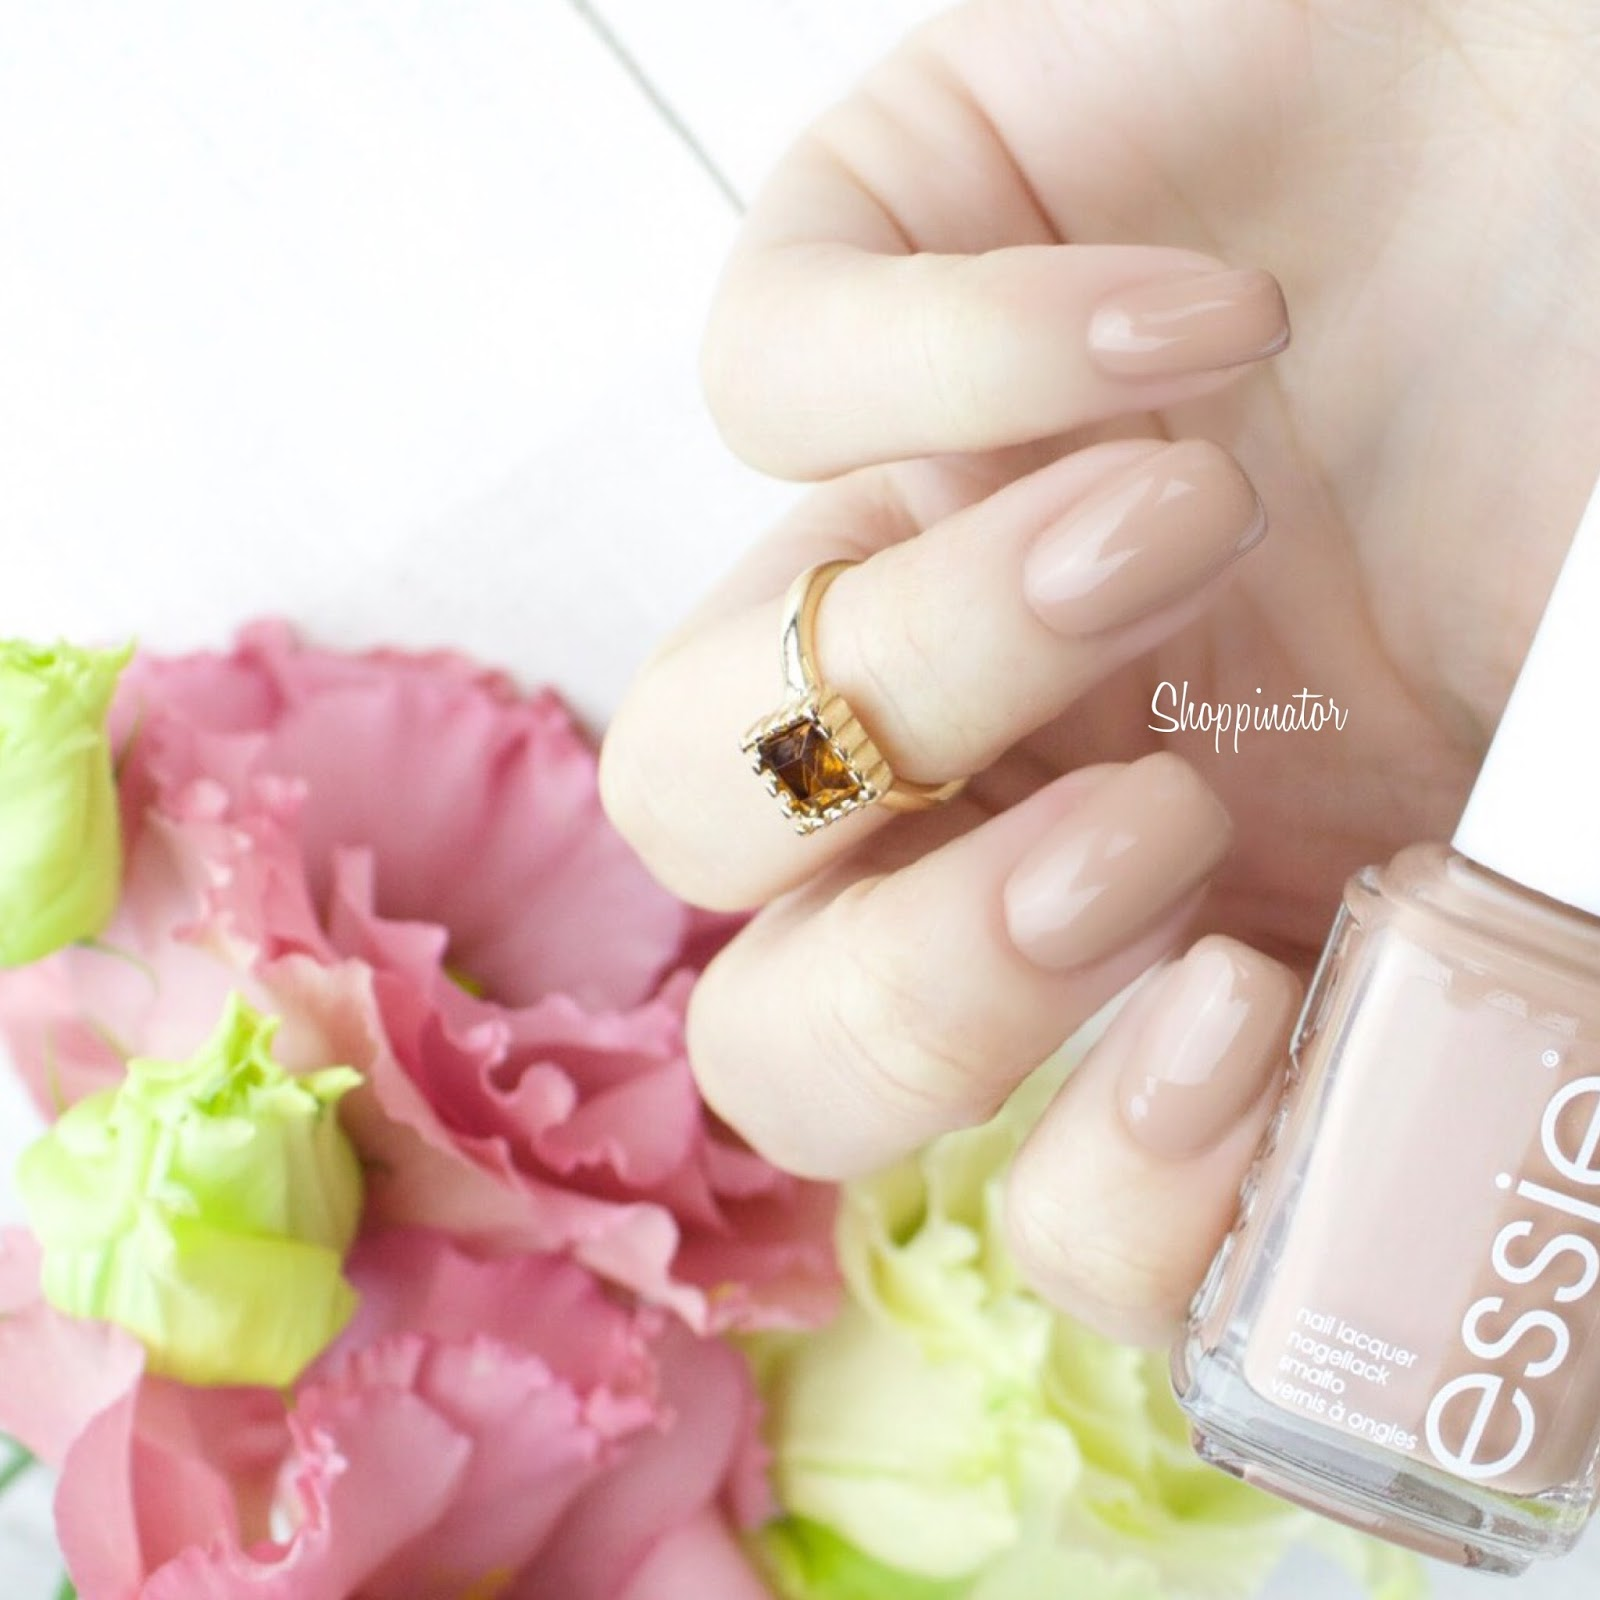 essie-spring-le-frühling-swatches-swatch-review-flowerista-lila-flowers-nagellack-nailpolish-limitiert-notd-nailoftheday-shoppinator-perennial-chic-blossom-dandy-garden-variety-petal-pedal-pushers-picked-perfect-garden-variety